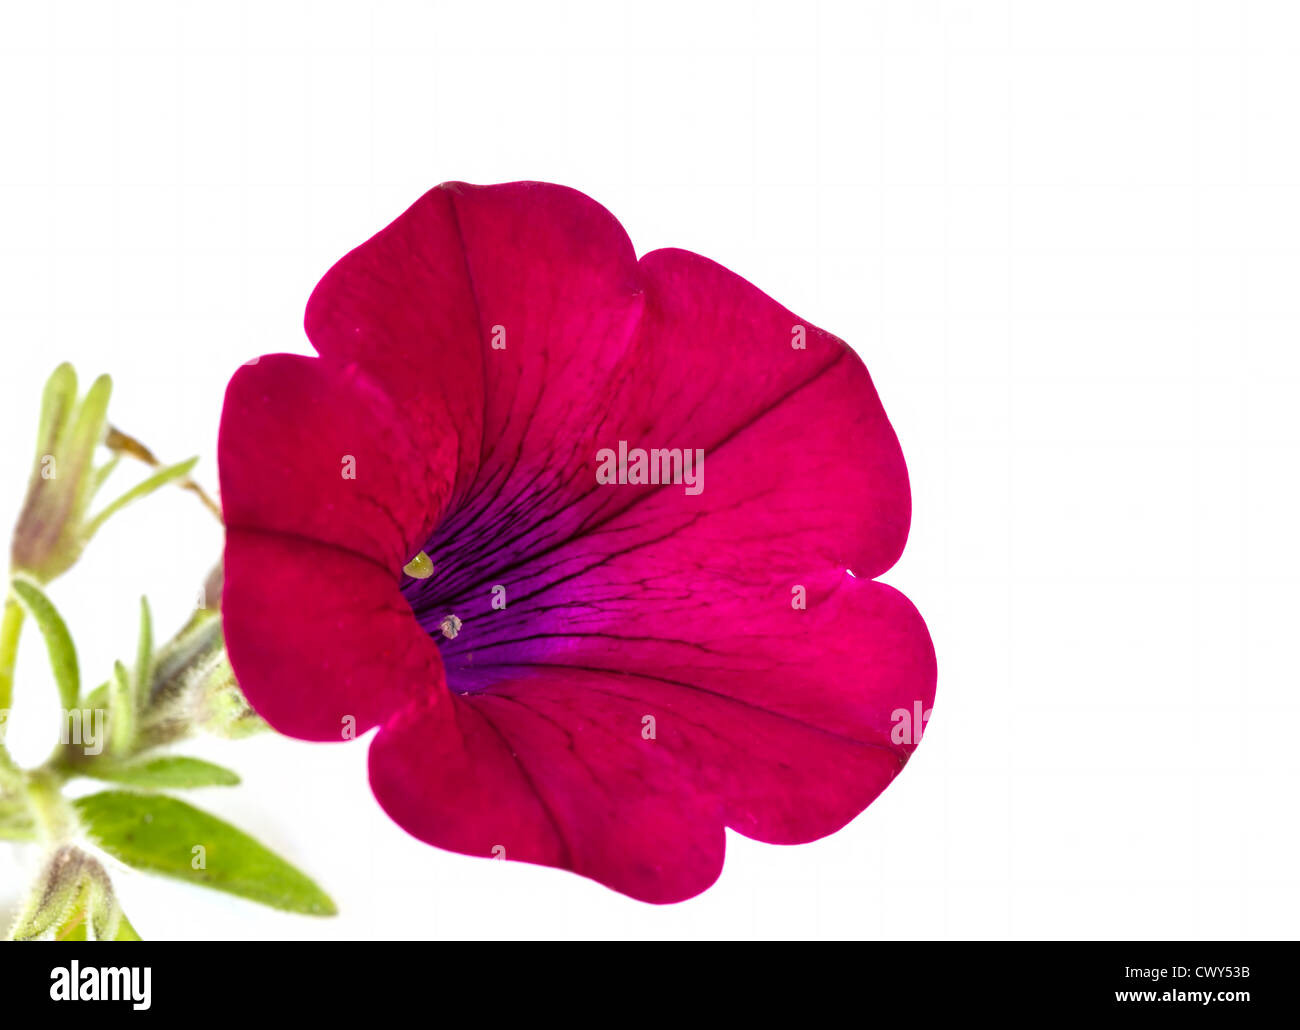 Red petunia flower on white background - Stock Image